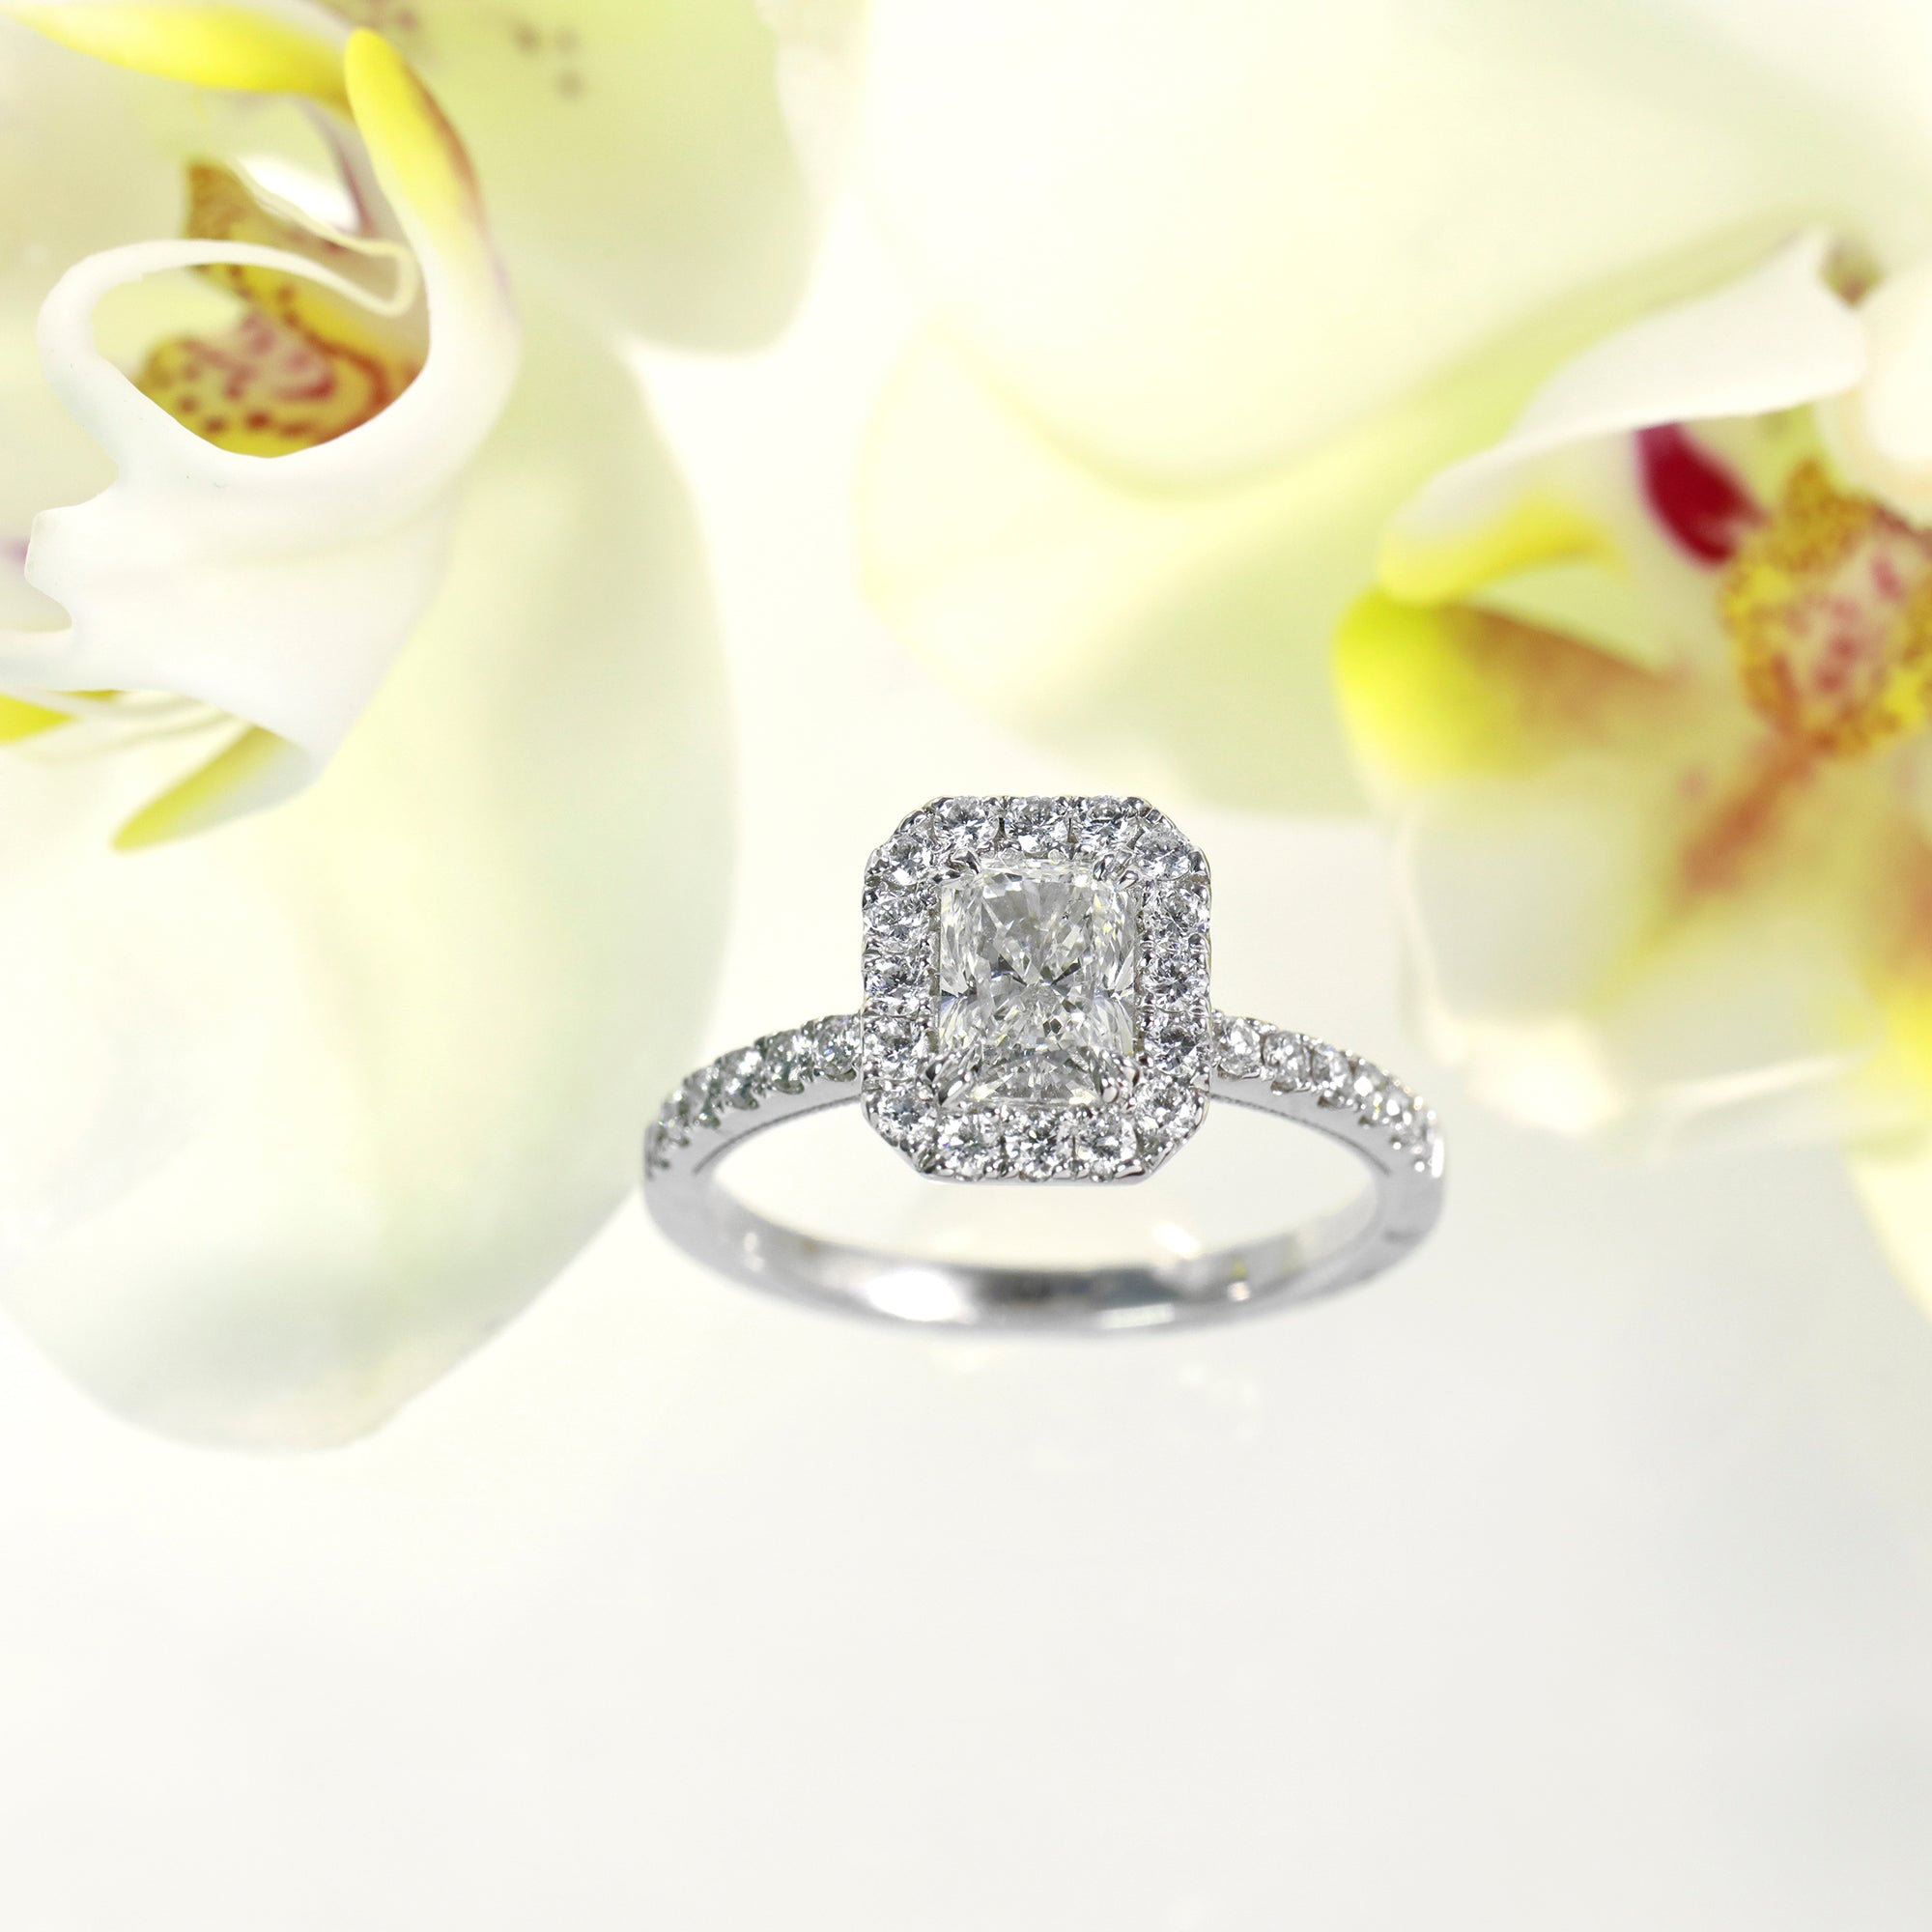 14K white gold diamond engagement ring featuring one rectangular radiant diamond, and a diamond halo and side stones with round brilliant diamonds.